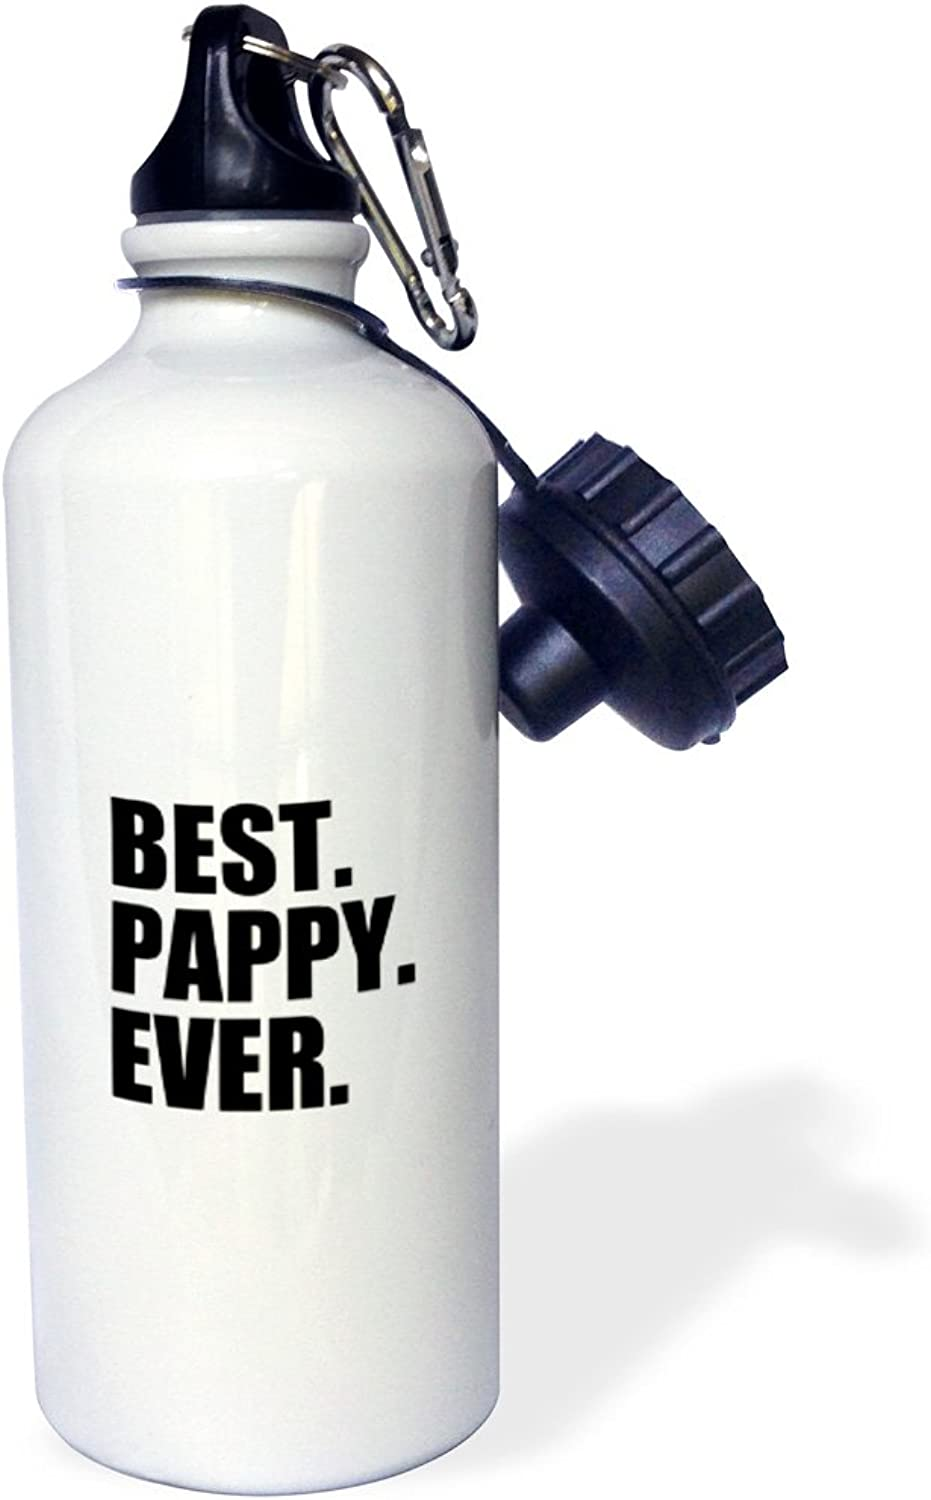 3dpink wb_151515_1  Best Pappy EverGifts for GrandfathersGranddad Grandpa nicknamesblack textfamily gifts  Sports Water Bottle, 21 oz, White